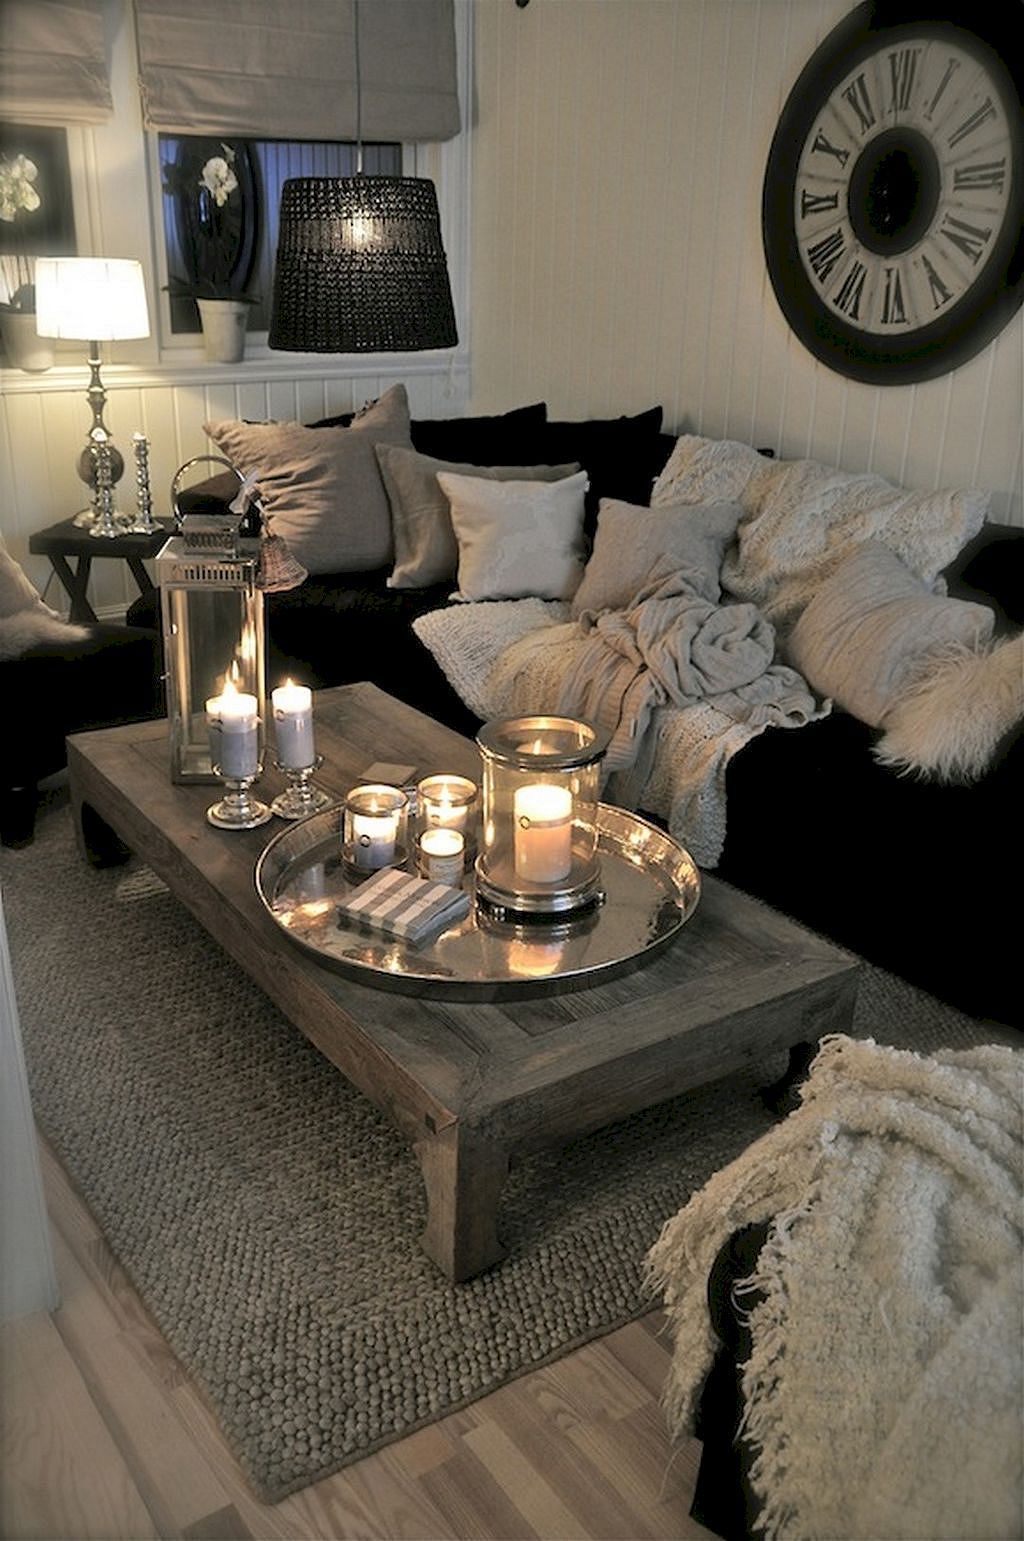 10 DIY Low-Budget Small Apartment Decorating Ideas | Modern ...